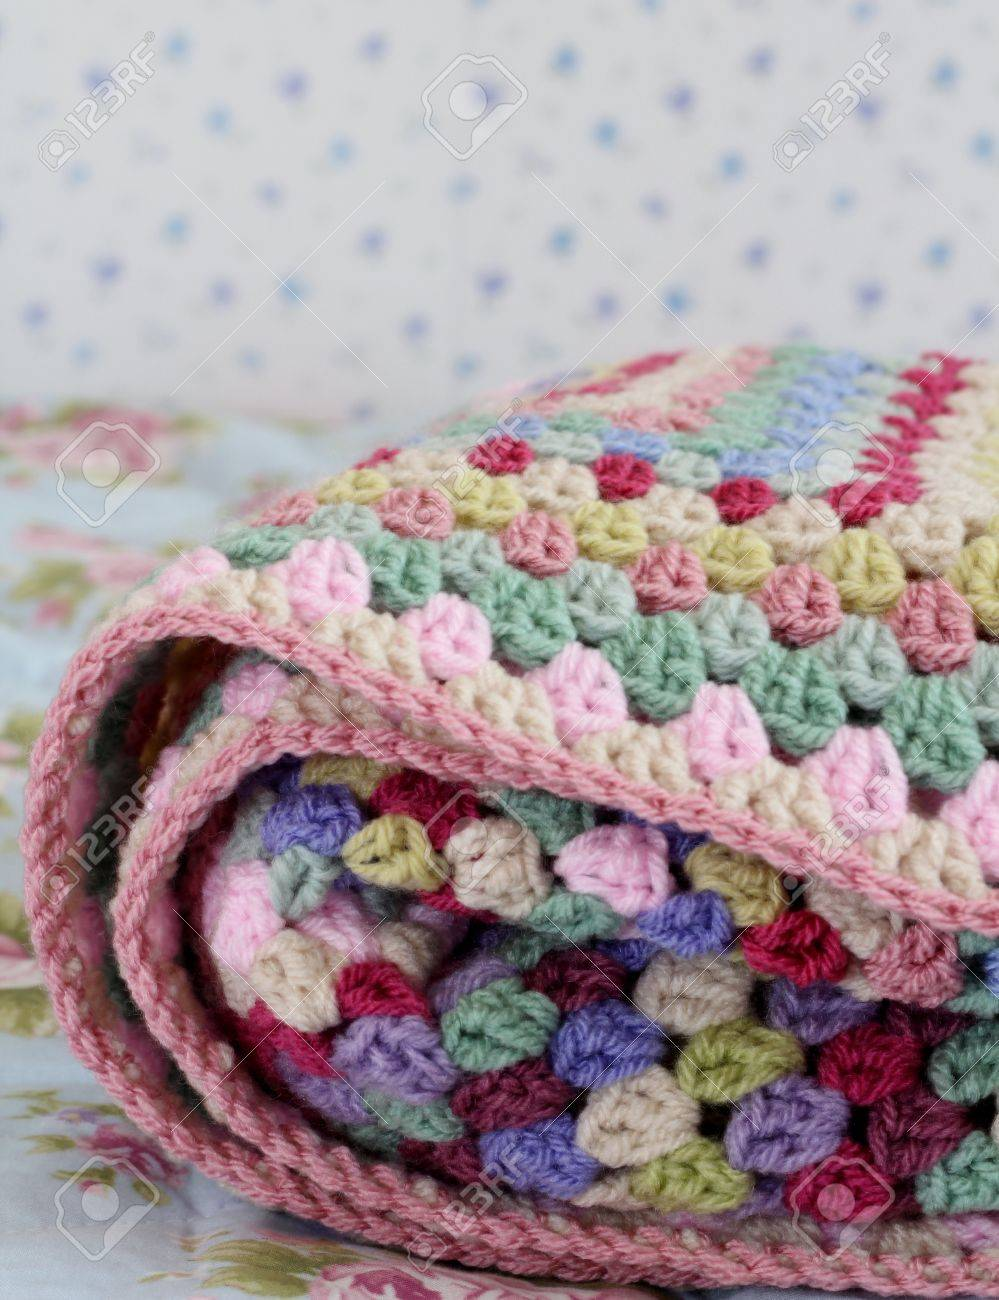 Pretty Handmade Crochet Afghan Blanket Folded On Bed Made In